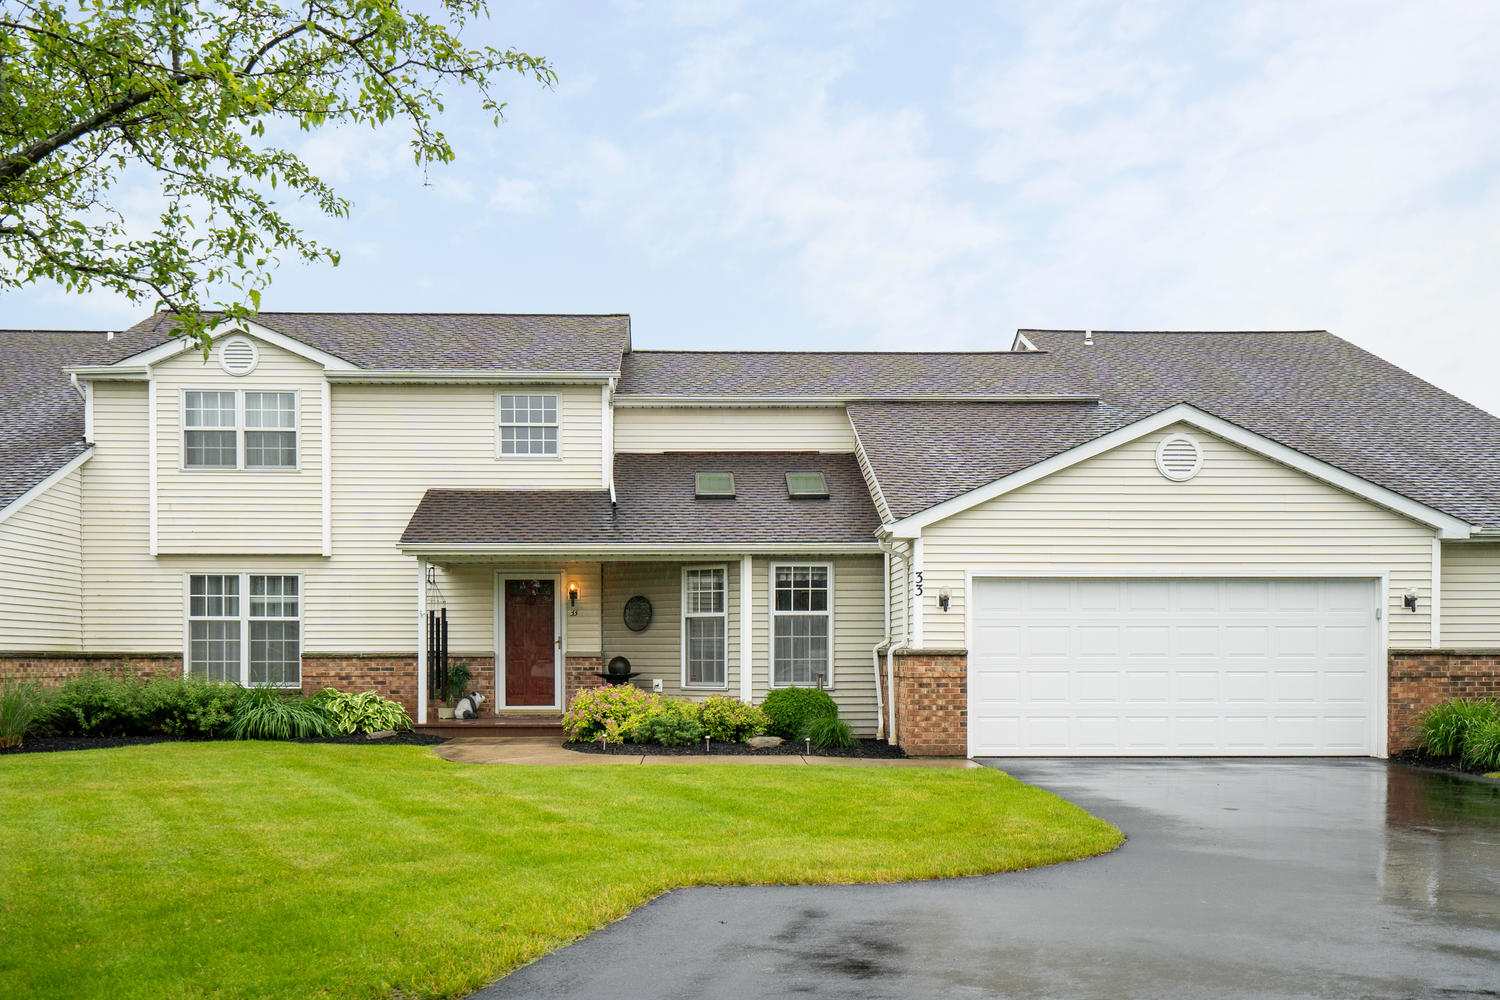 33 Crabapple Ct Orchard Park-large-001-017-Exterior Front-1500×1000-72dpi